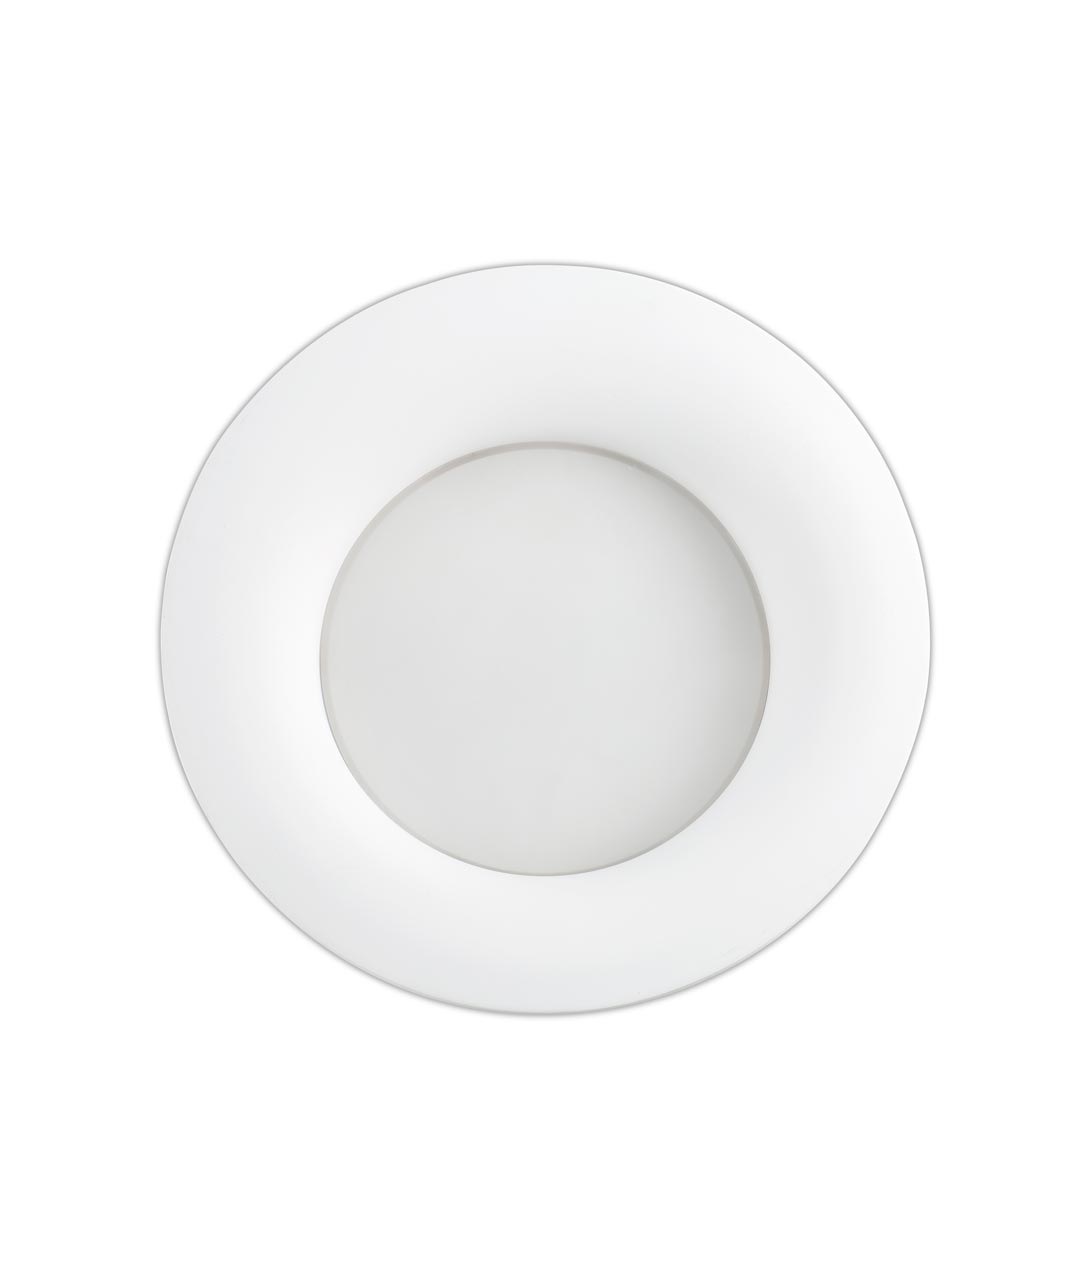 Foco empotrable de techo LED NORD blanco